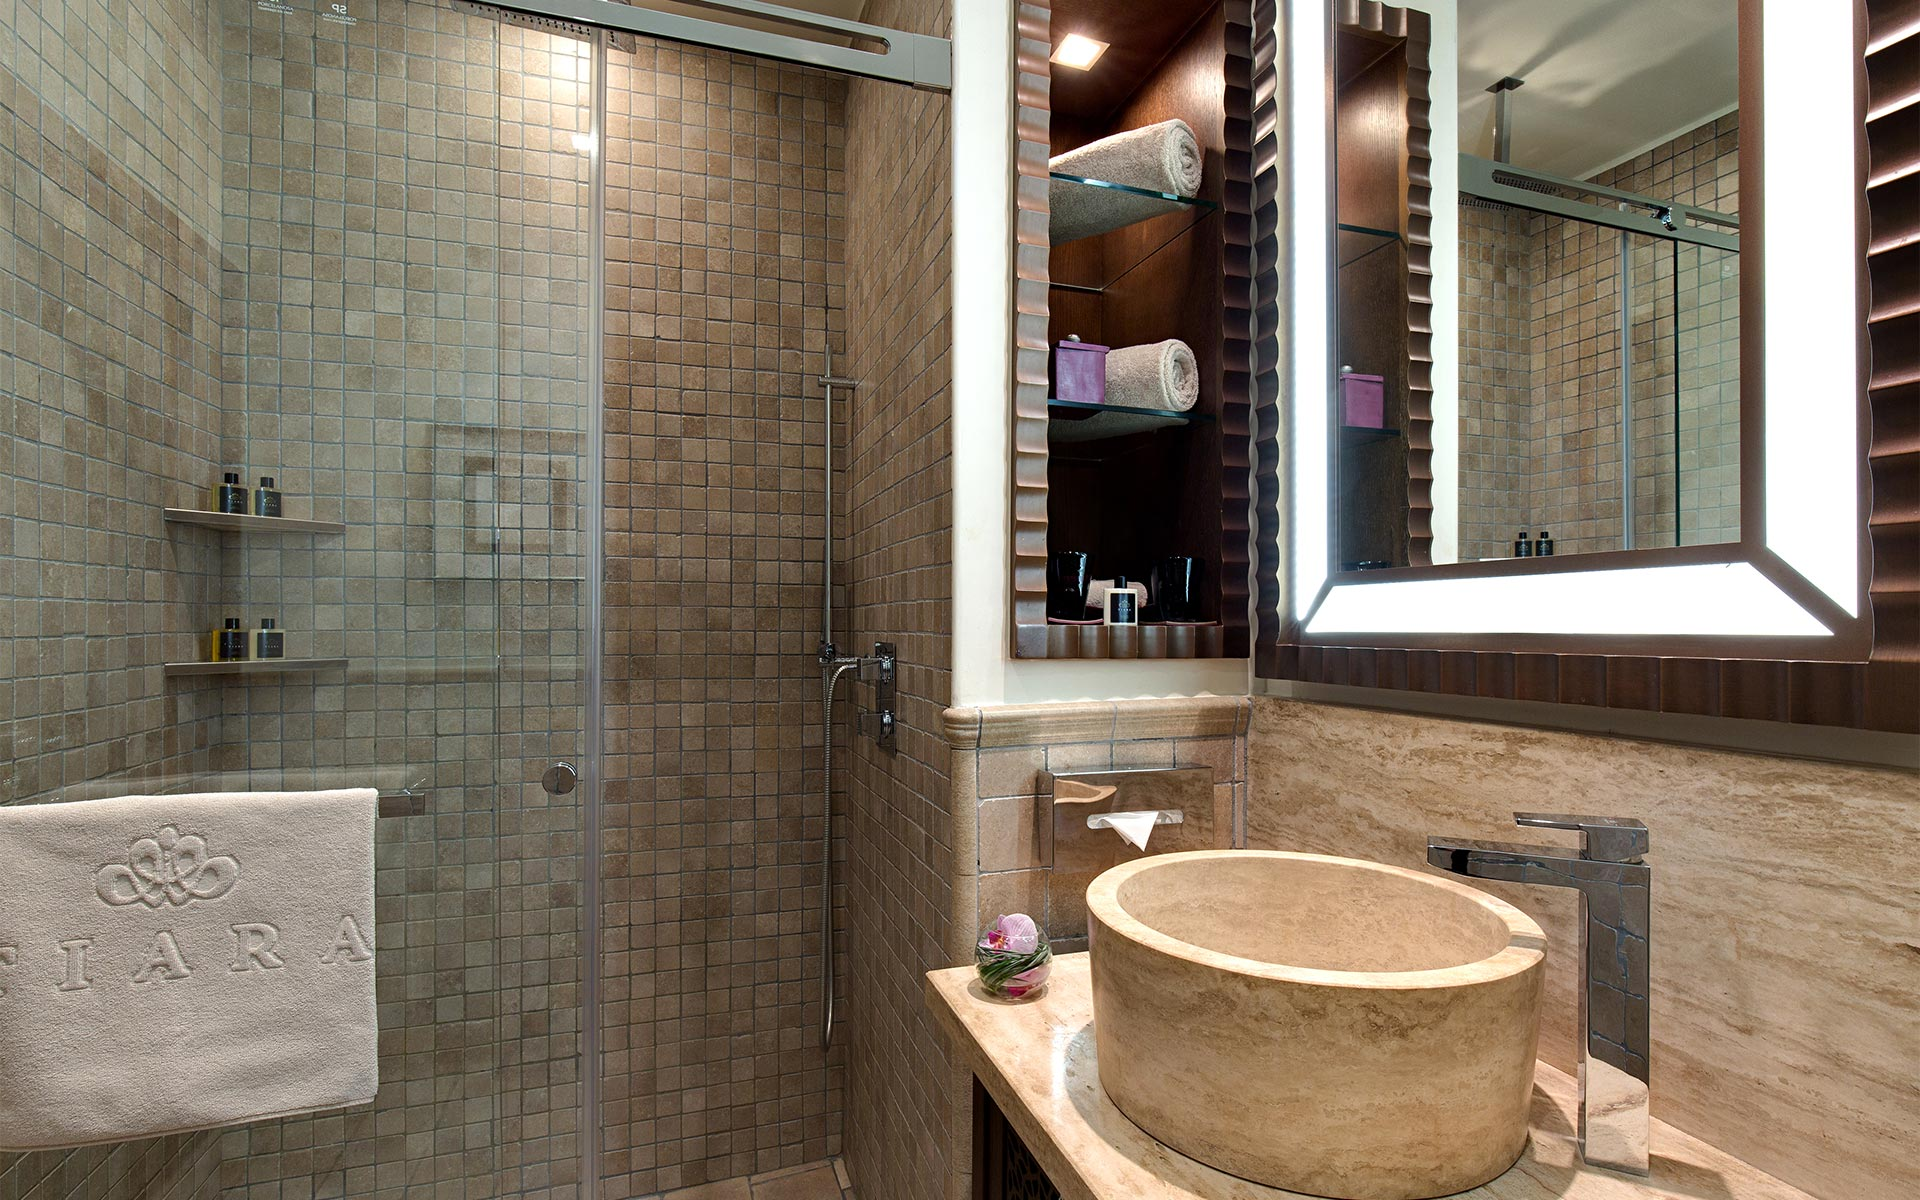 Miramar Beach Hotel & Spa - Classic Room - Shower room